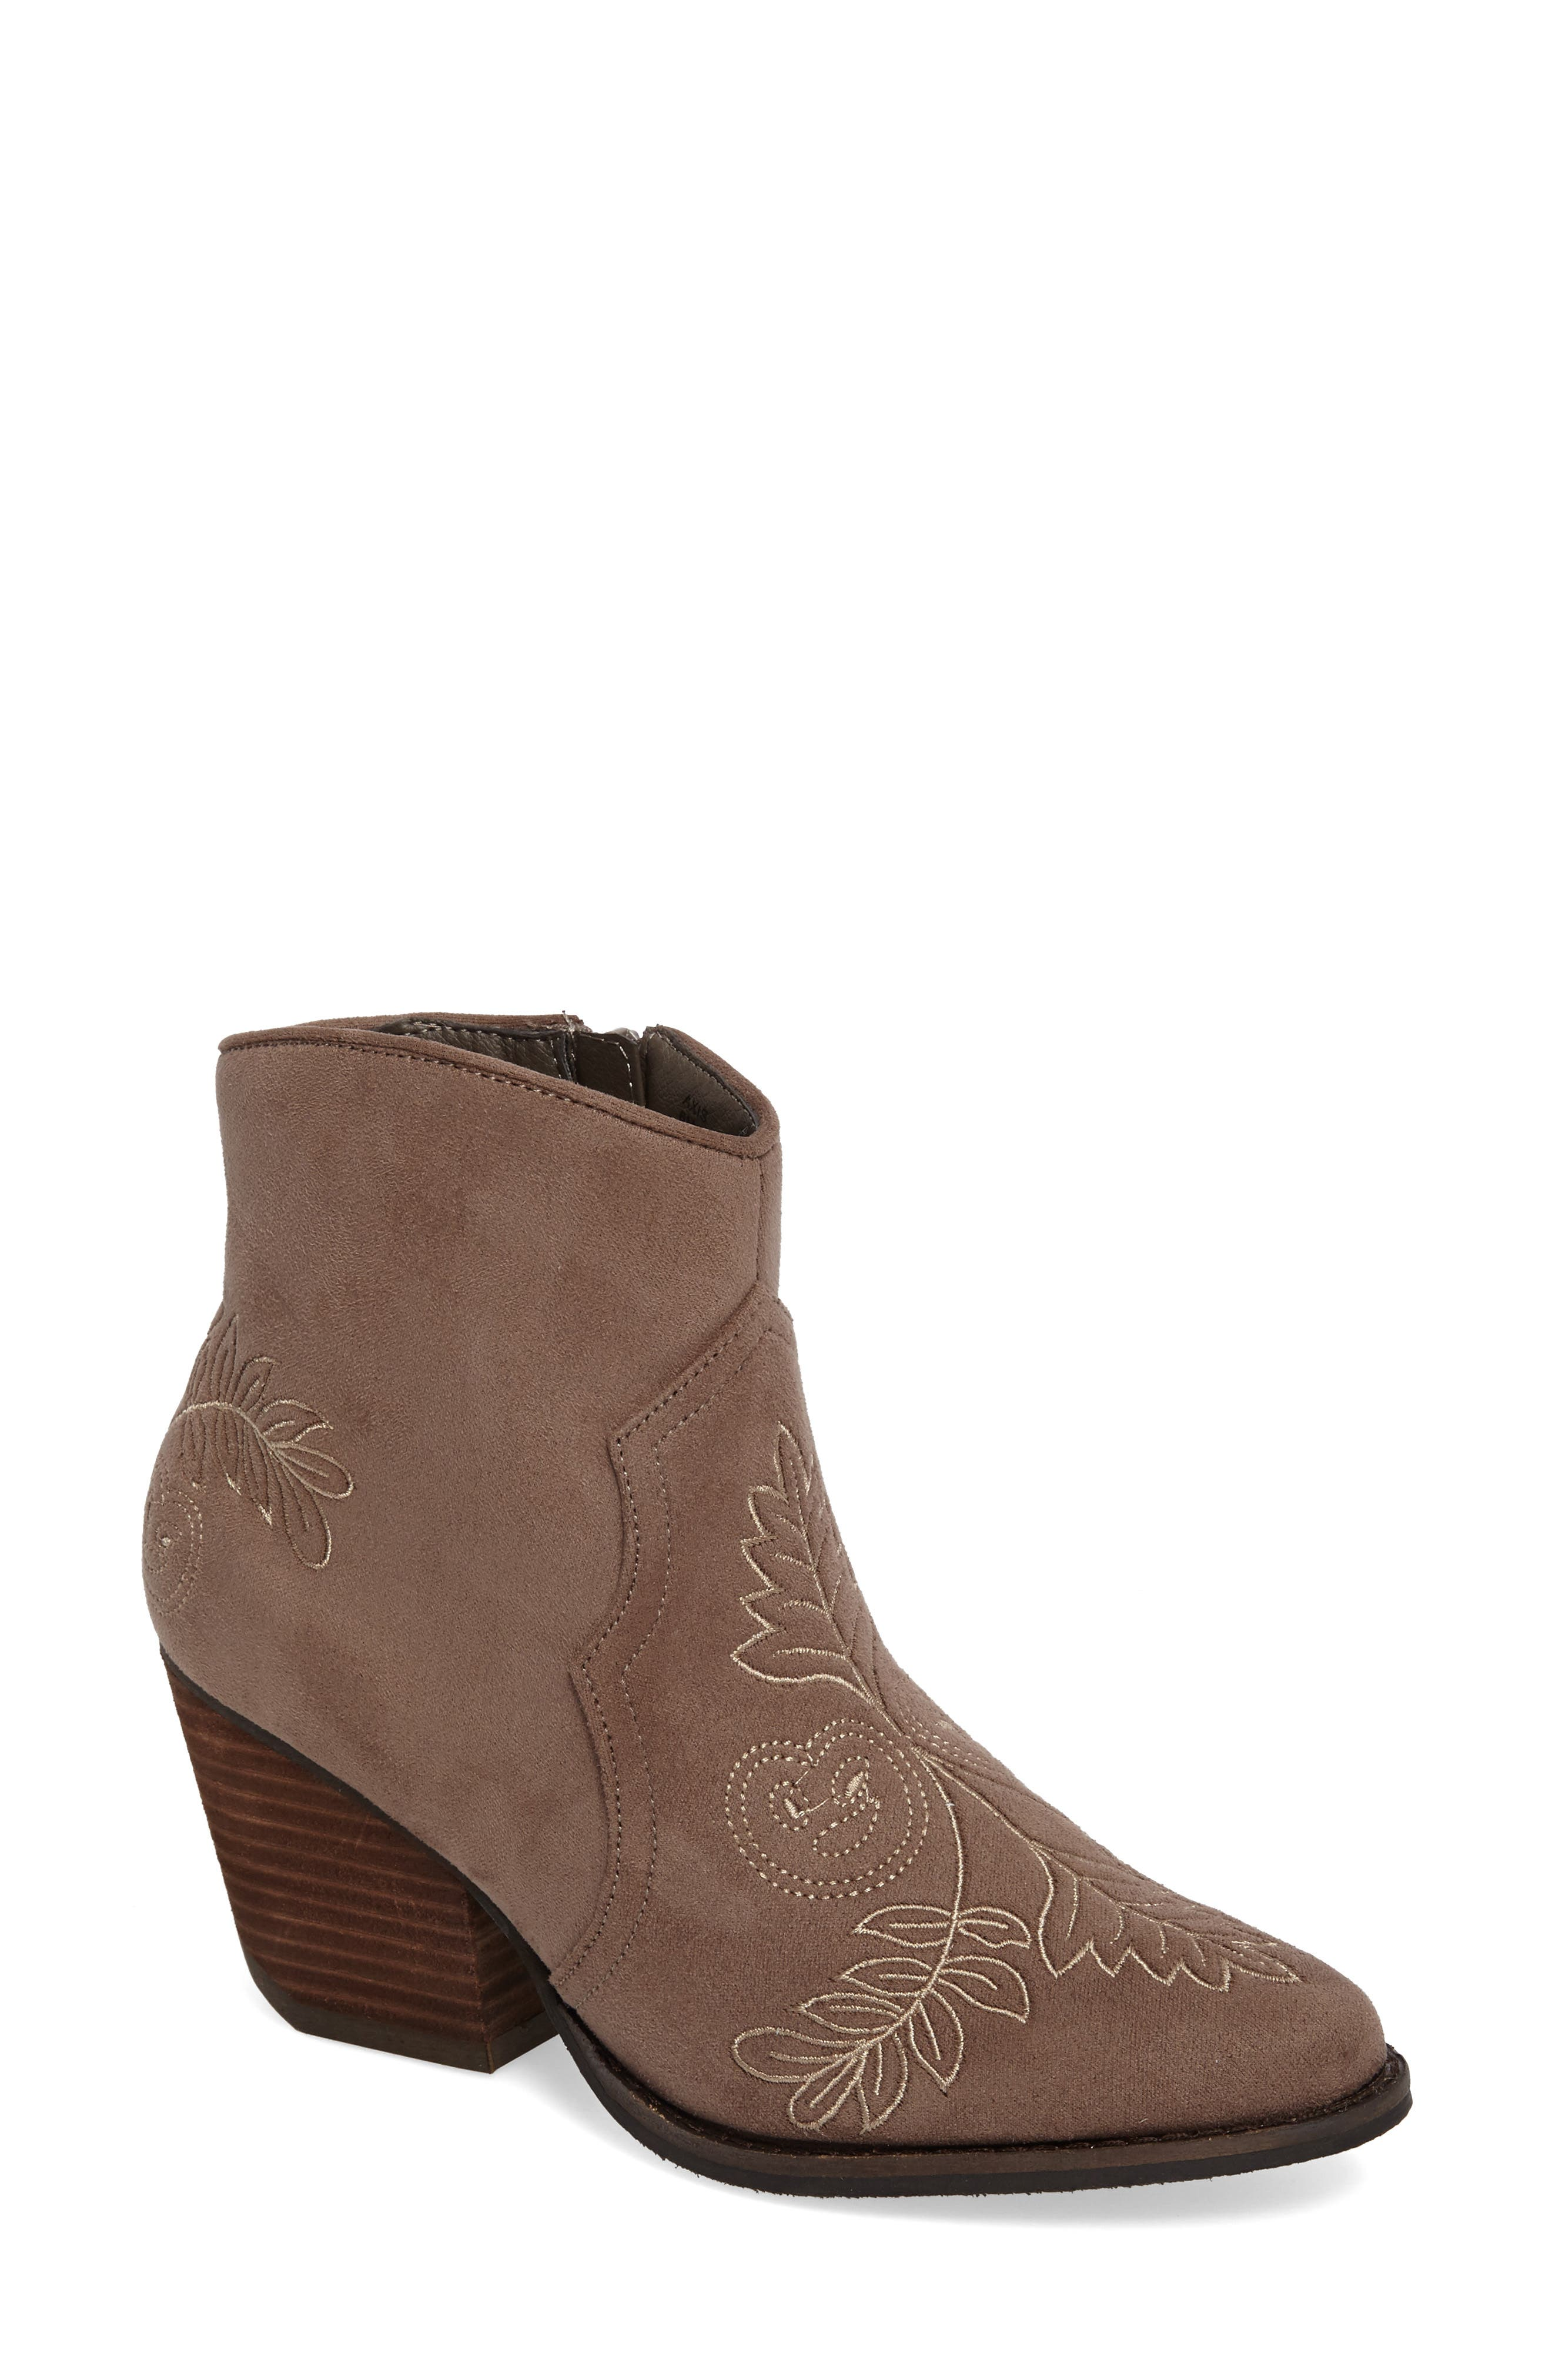 Axis Embroidered Bootie,                         Main,                         color, Taupe Suede